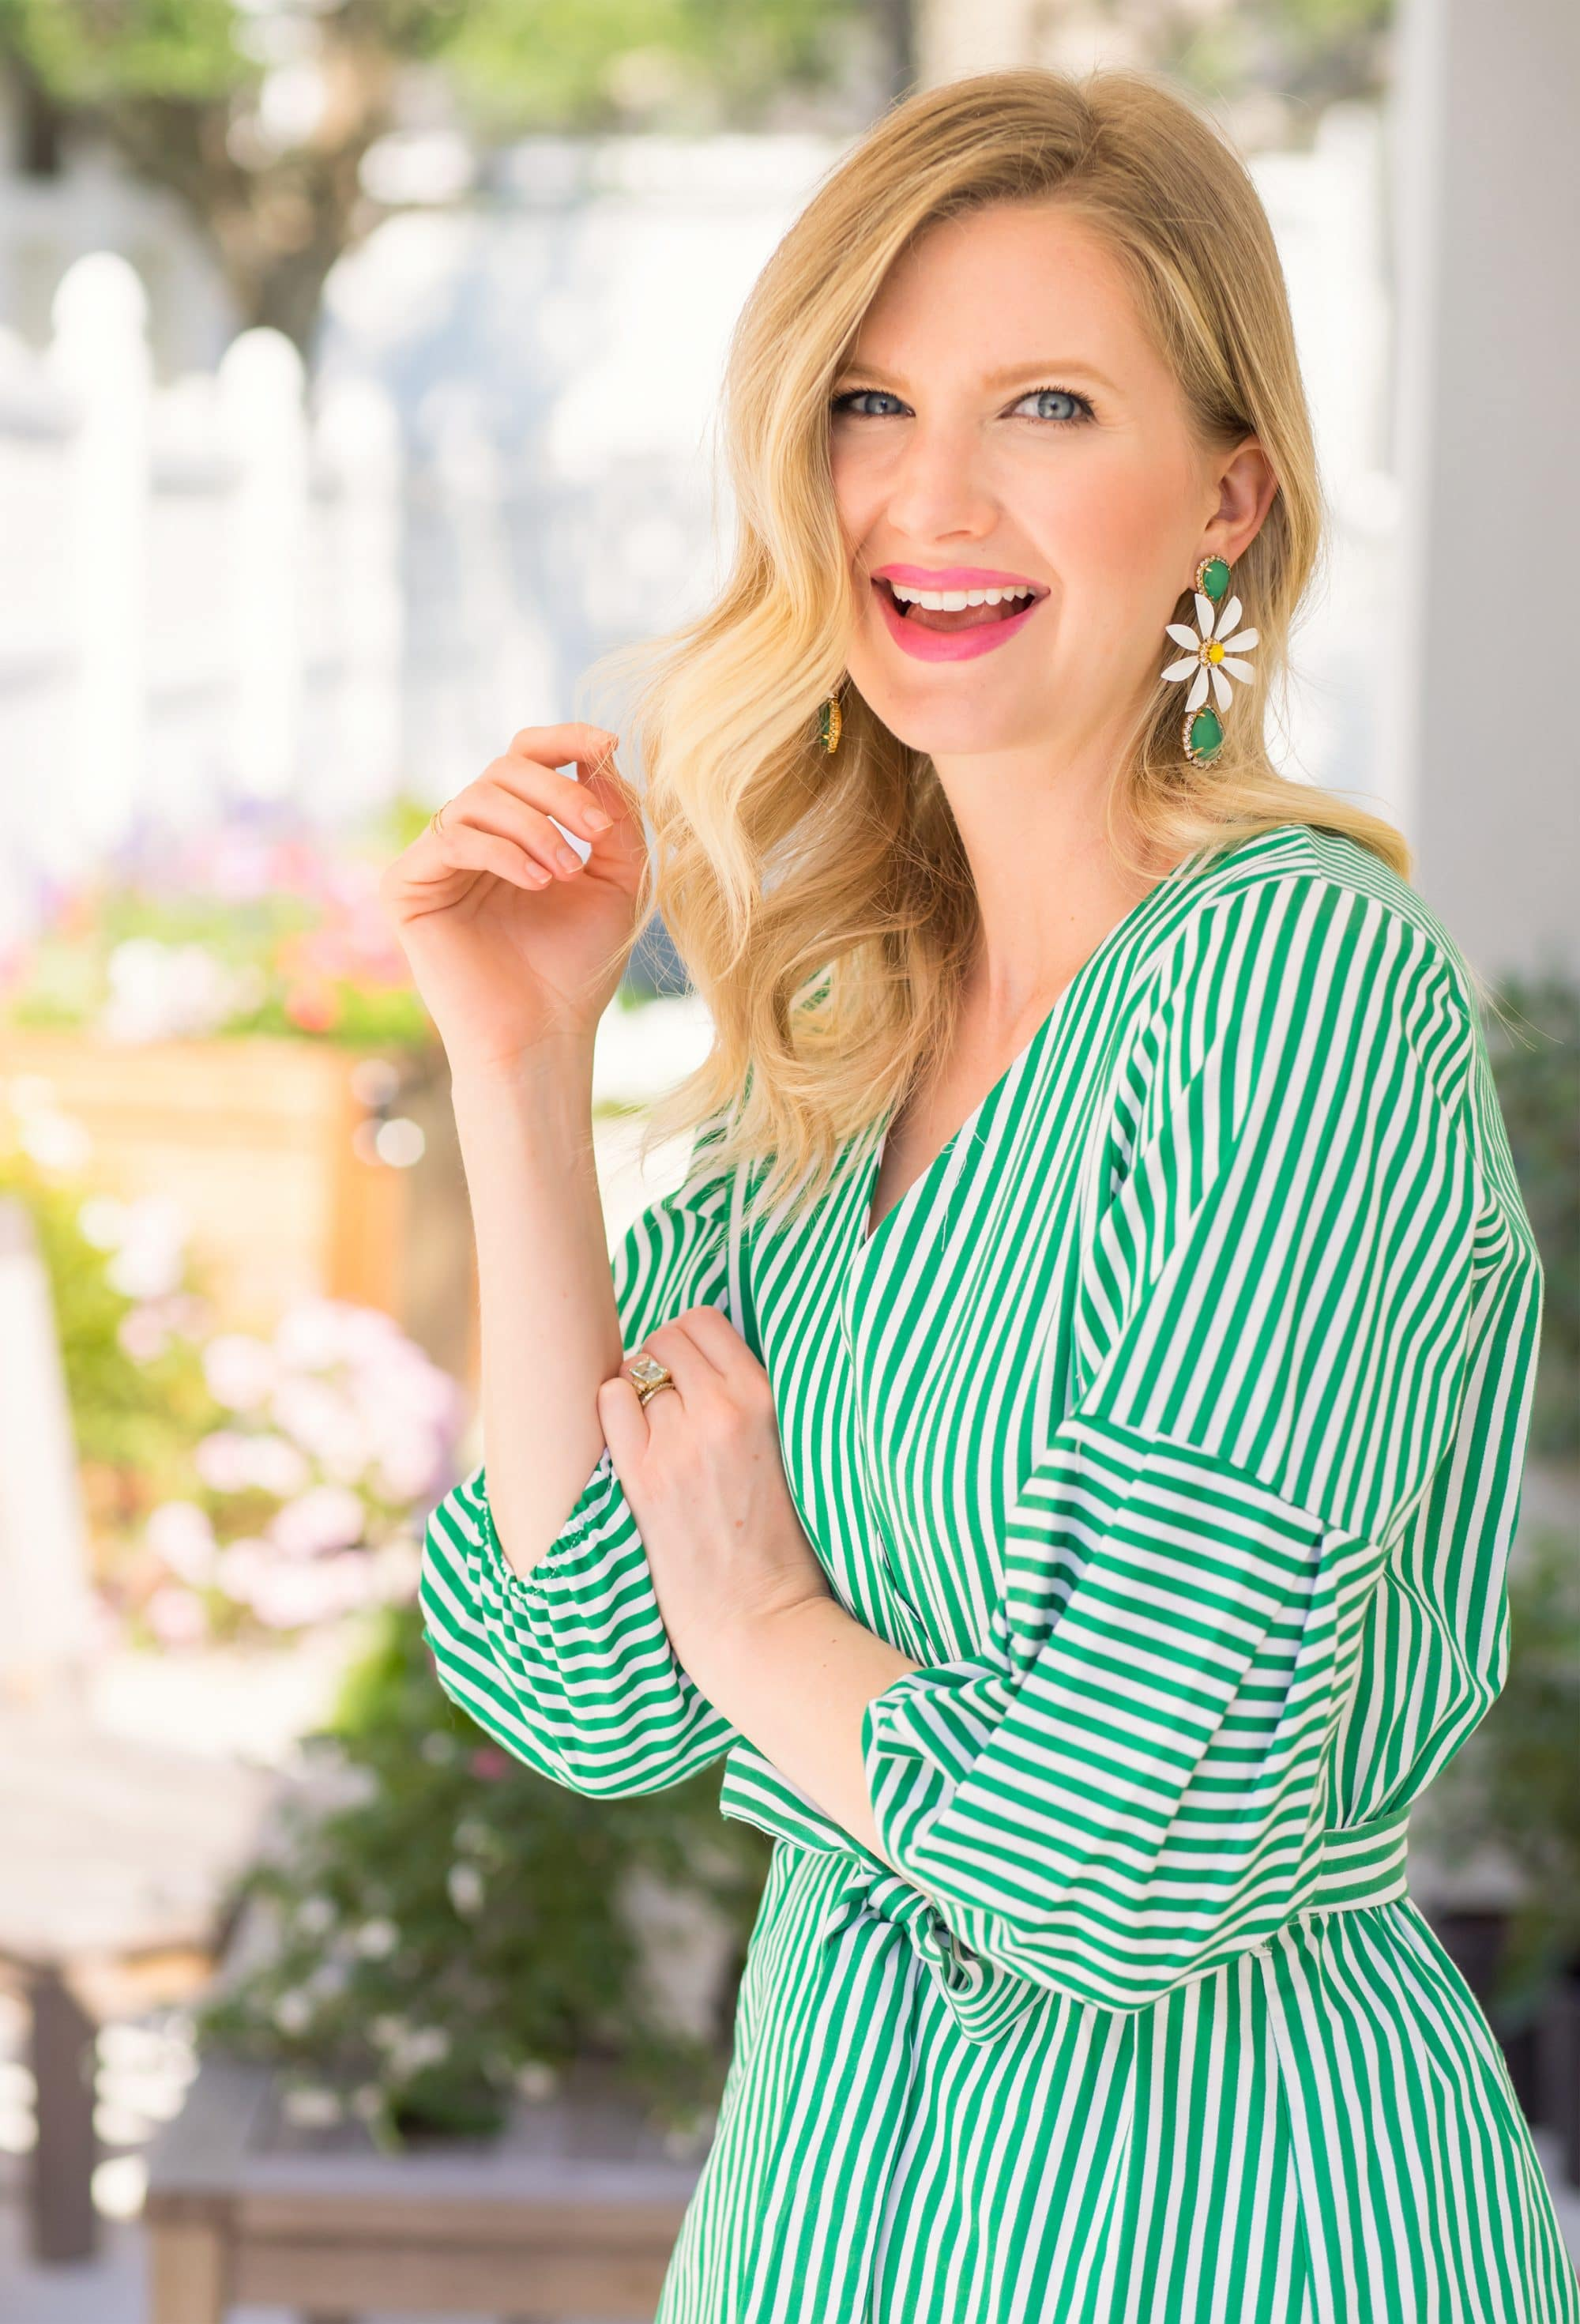 Daisy Statement Earrings and Green Gingham Dress | www.ashleybrookedesigns.com